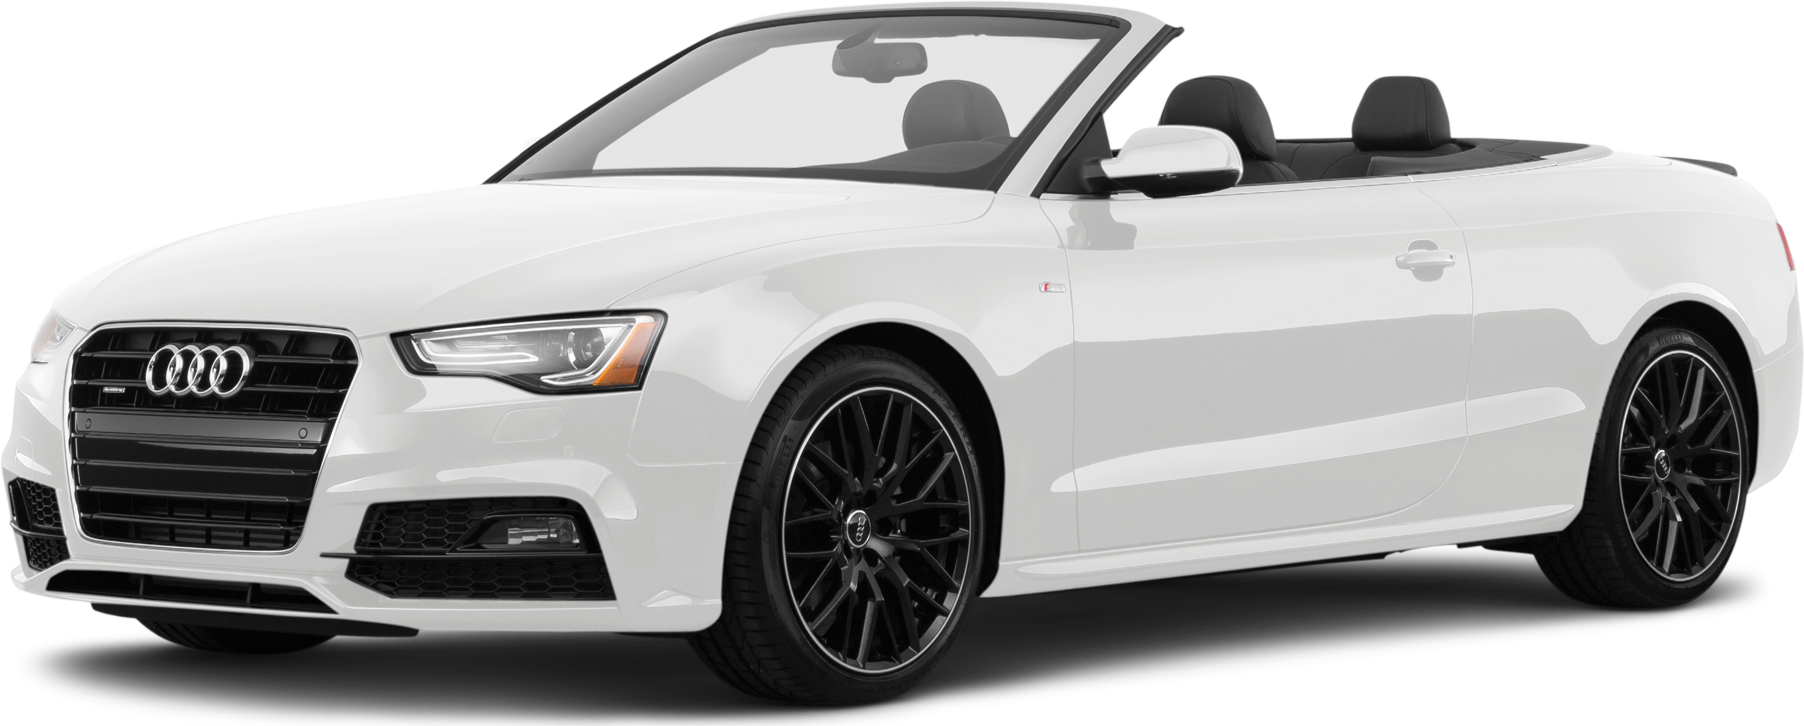 2017 Audi A5 Sport Values Cars For Sale Kelley Blue Book